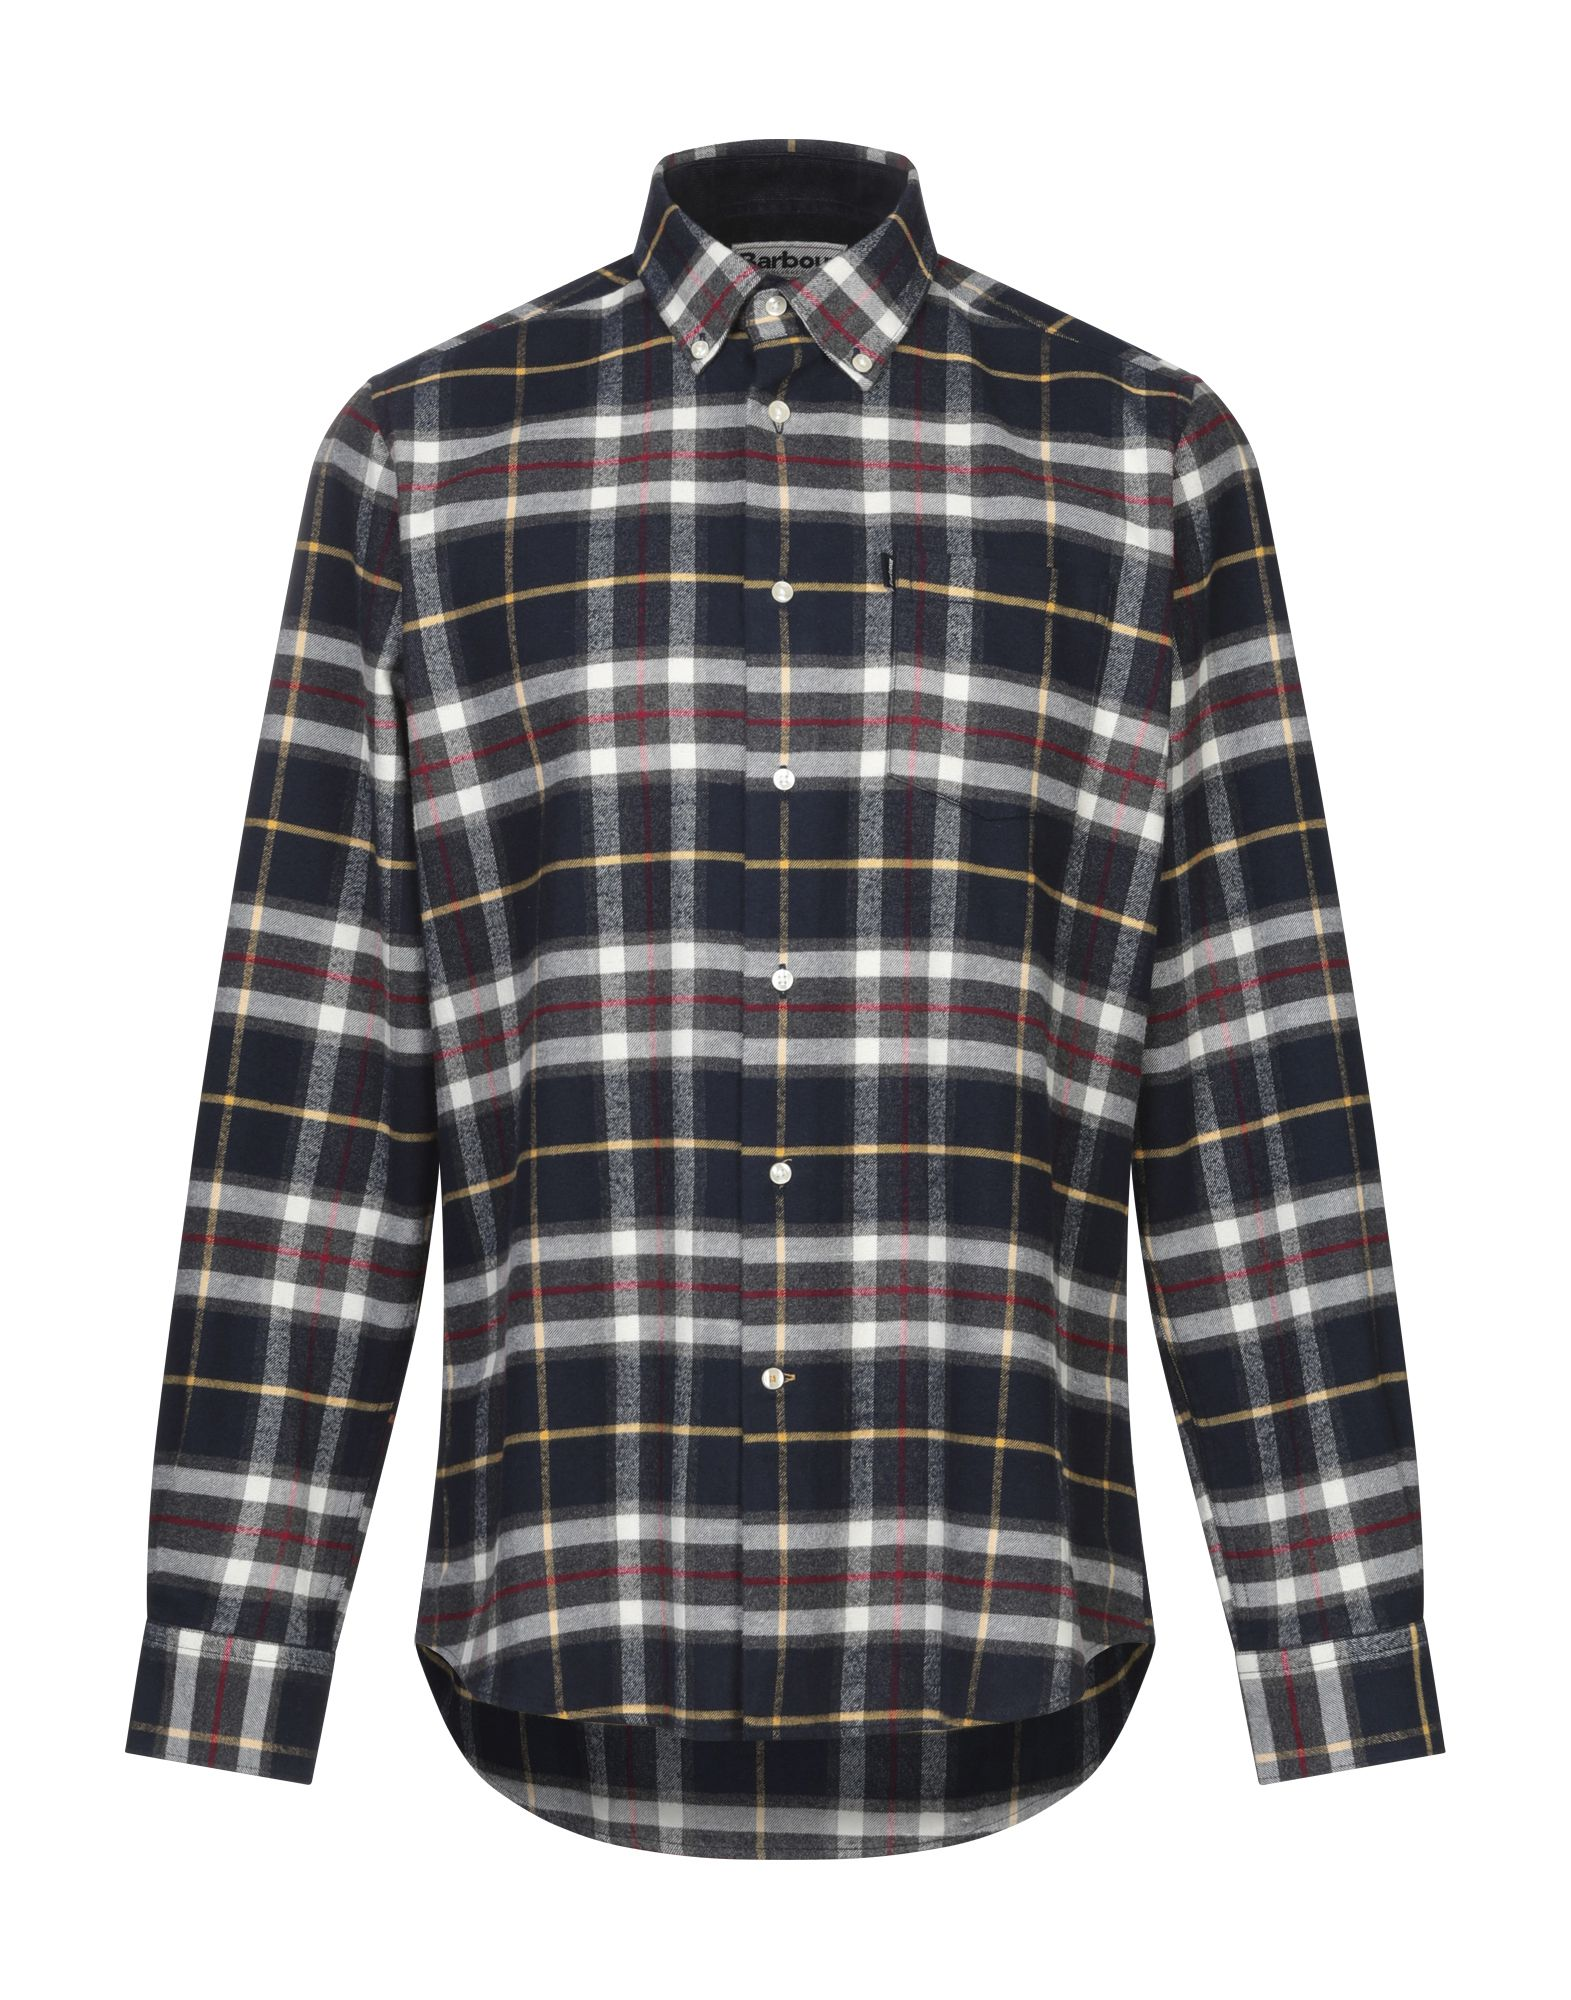 BARBOUR Pубашка футболка barbour mts0291 gy31